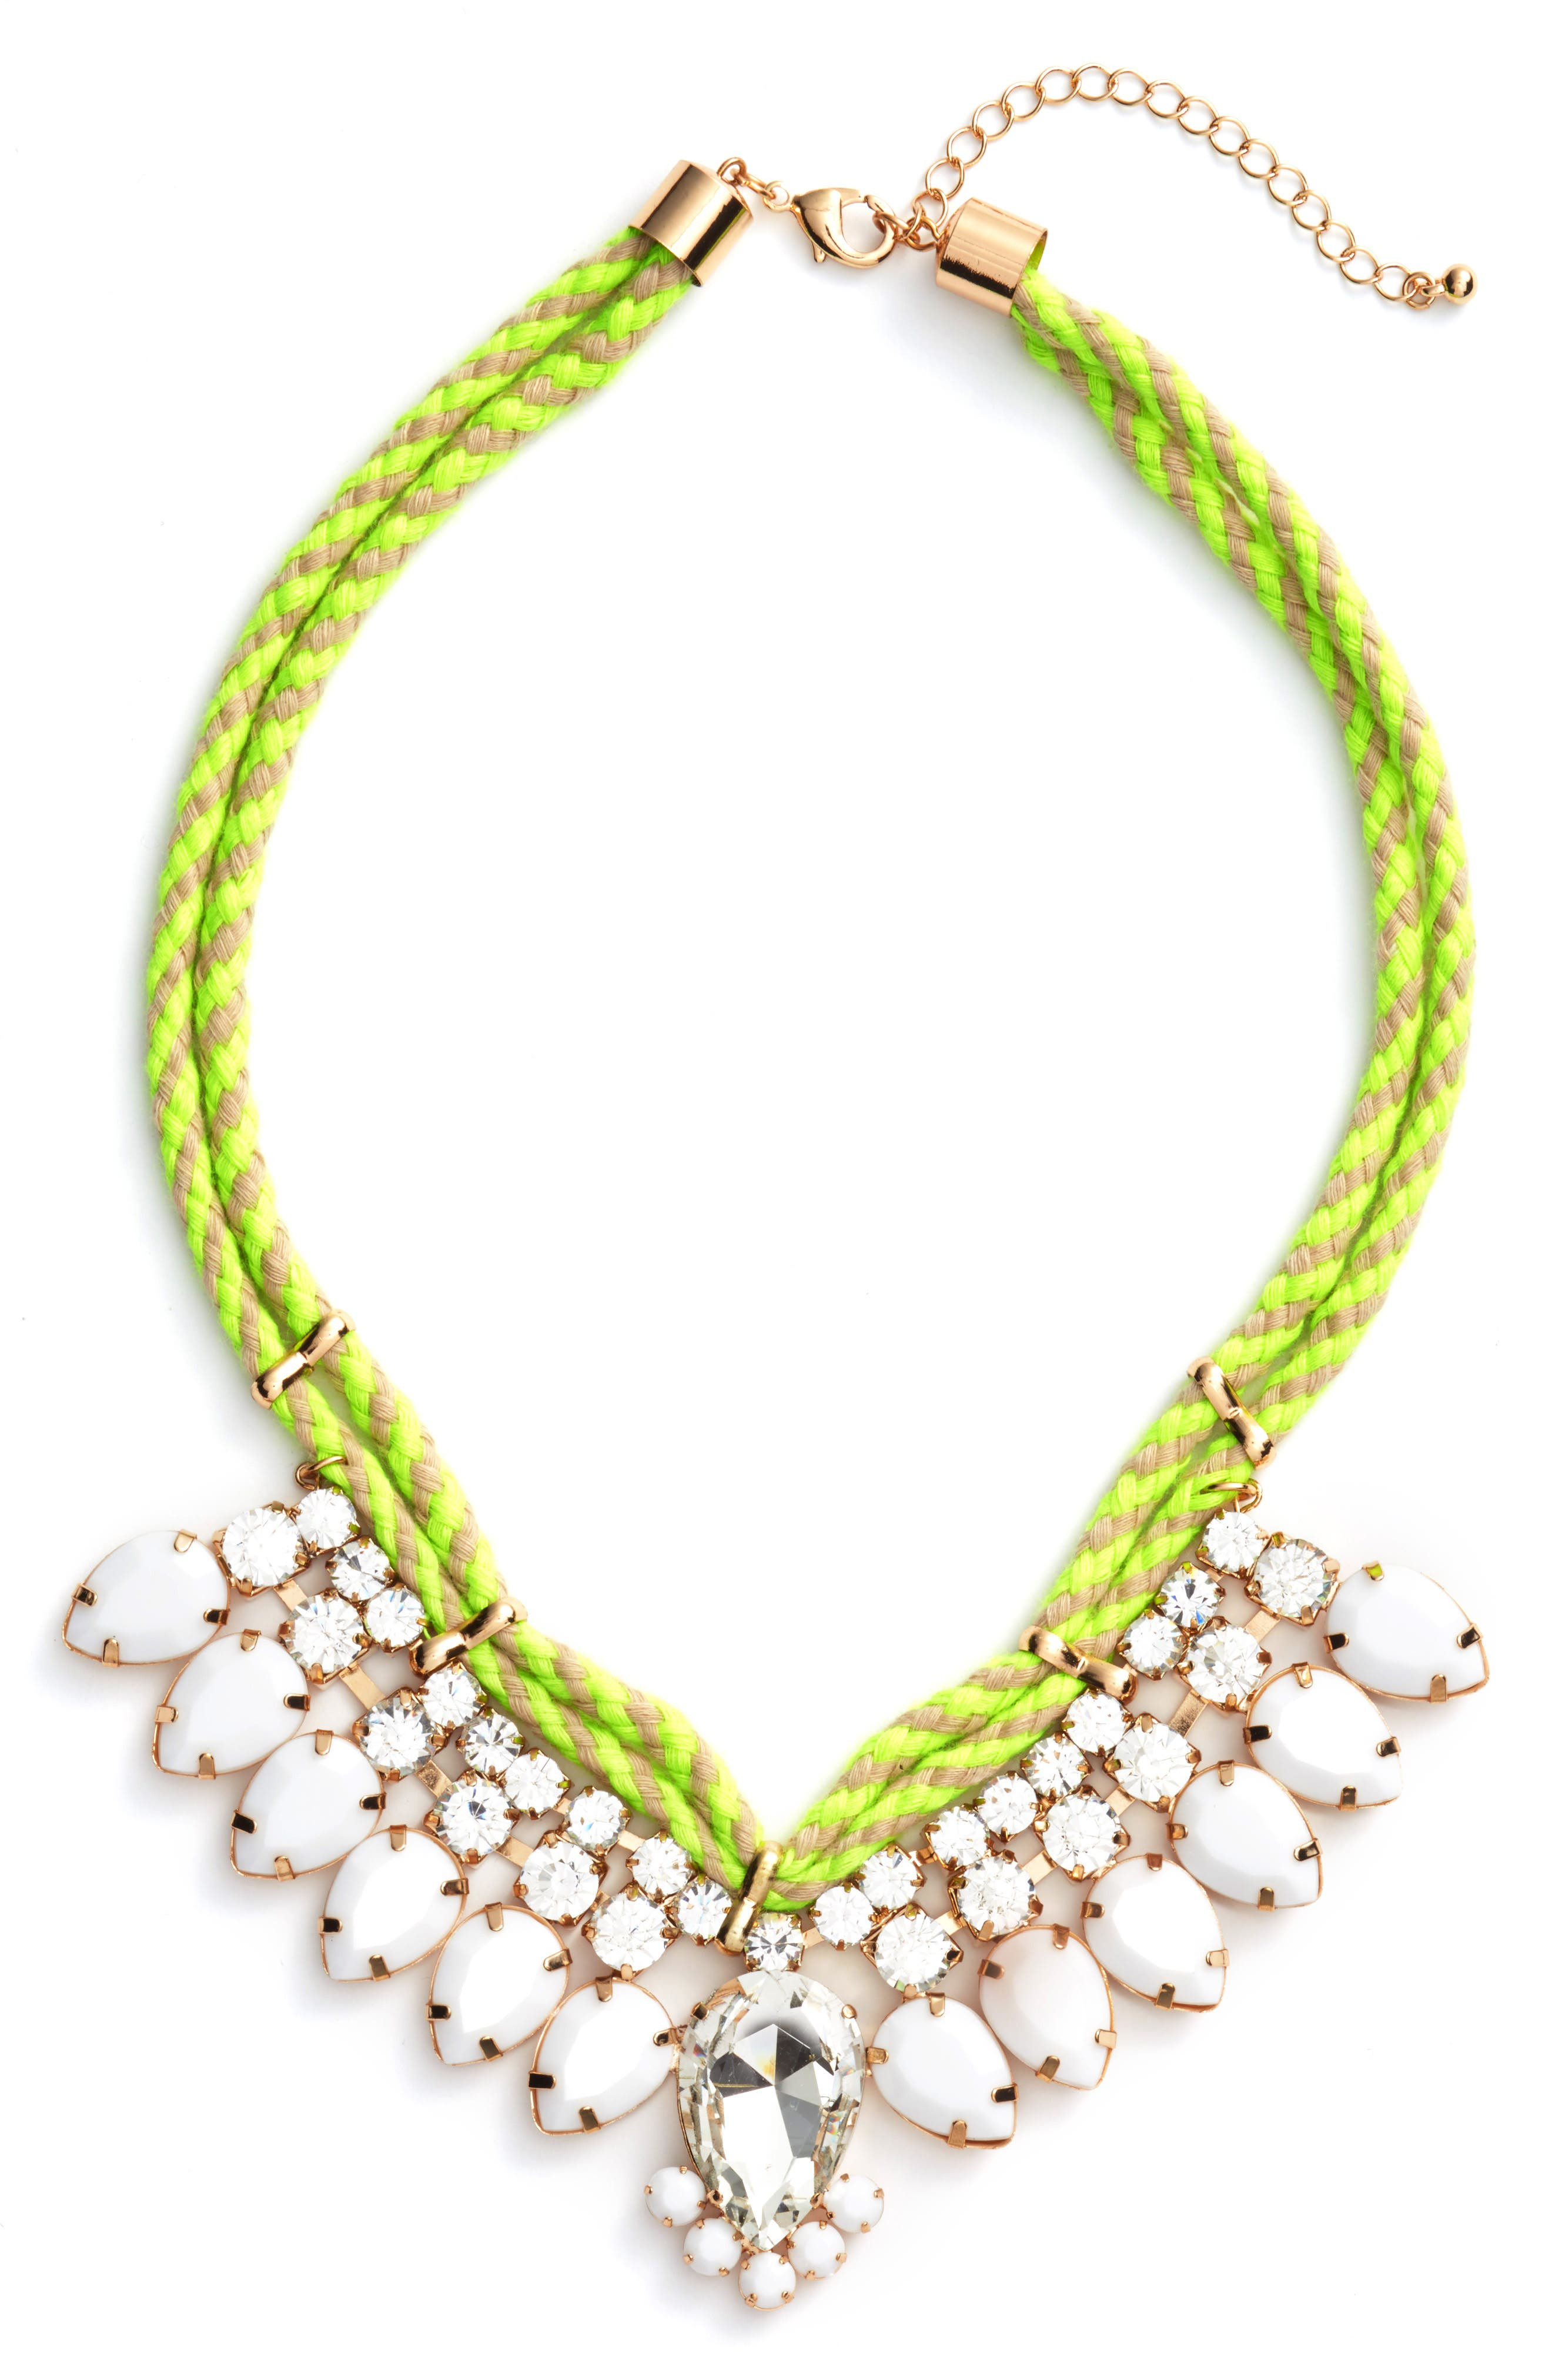 ADIA KIBUR Teardrop Rope Necklace in White